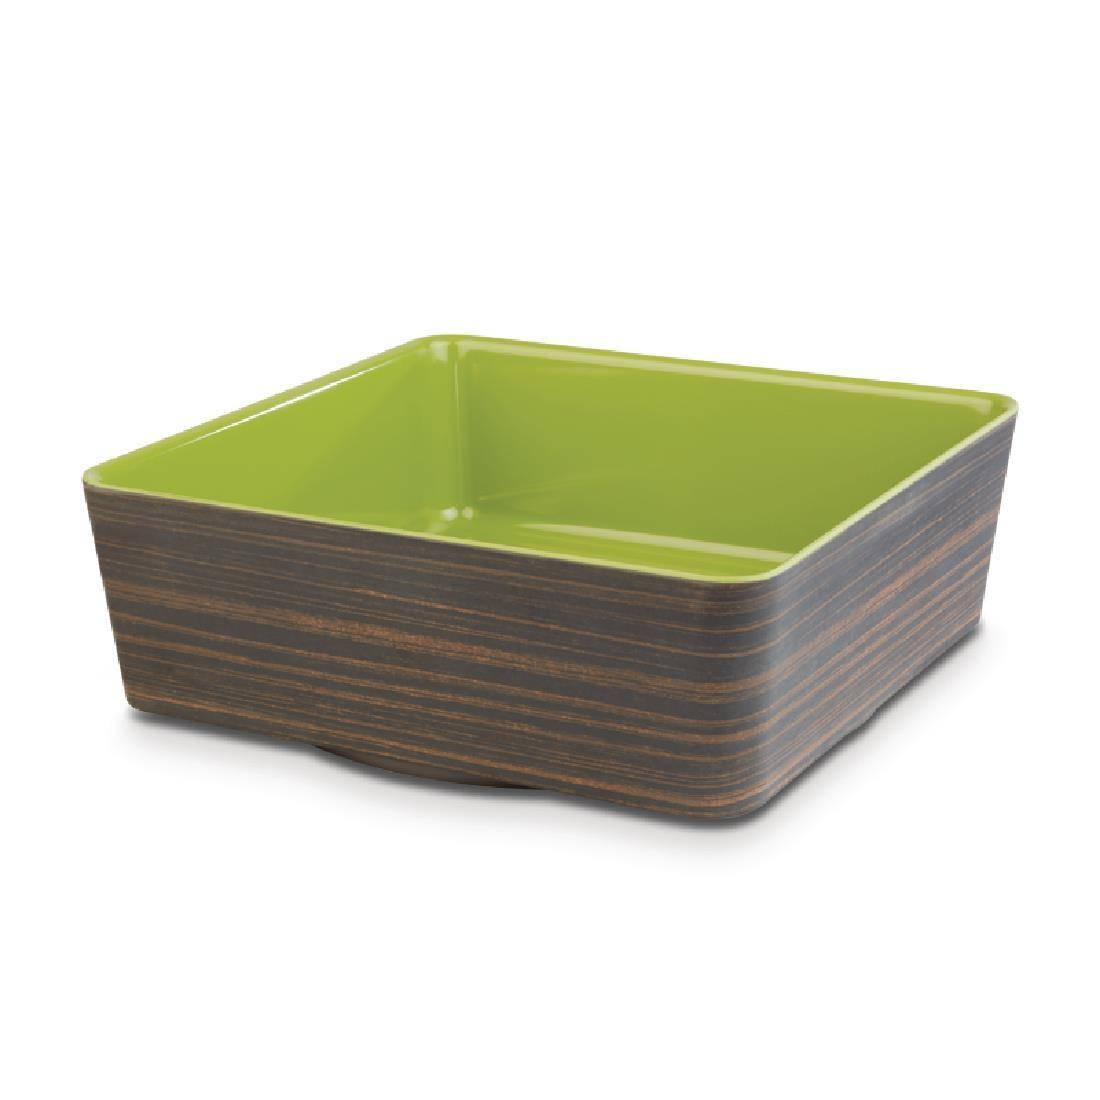 APS+ Melamine Square Bowl Oak and Green 4 Ltr - Each - CW694